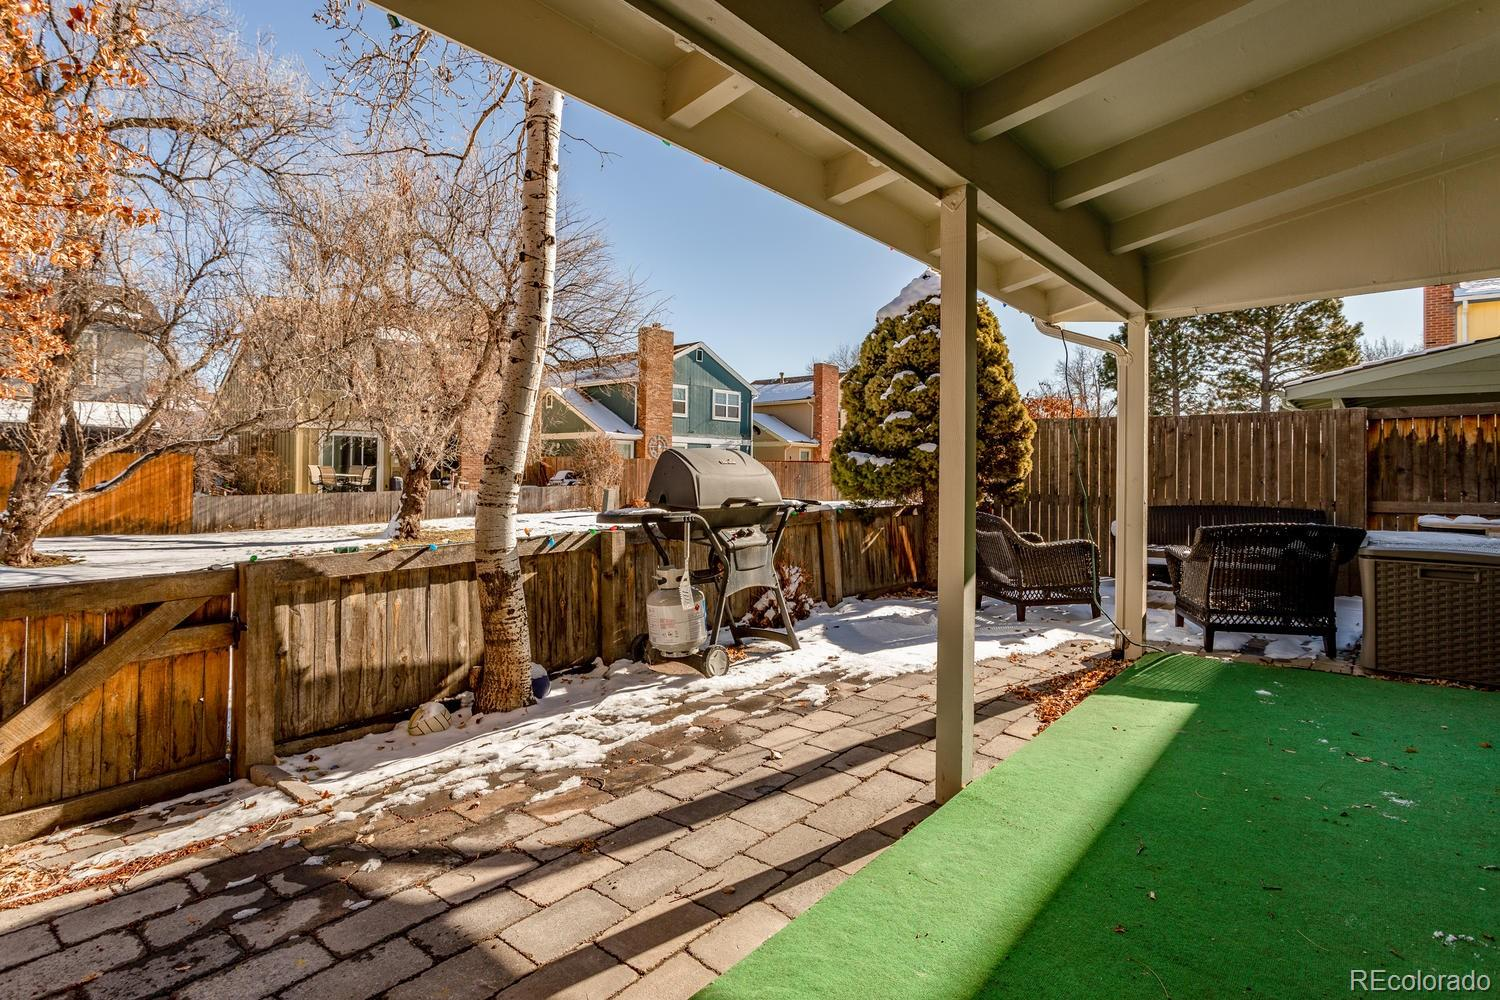 MLS# 6117171 - 24 - 9285 W 87th Place, Arvada, CO 80005